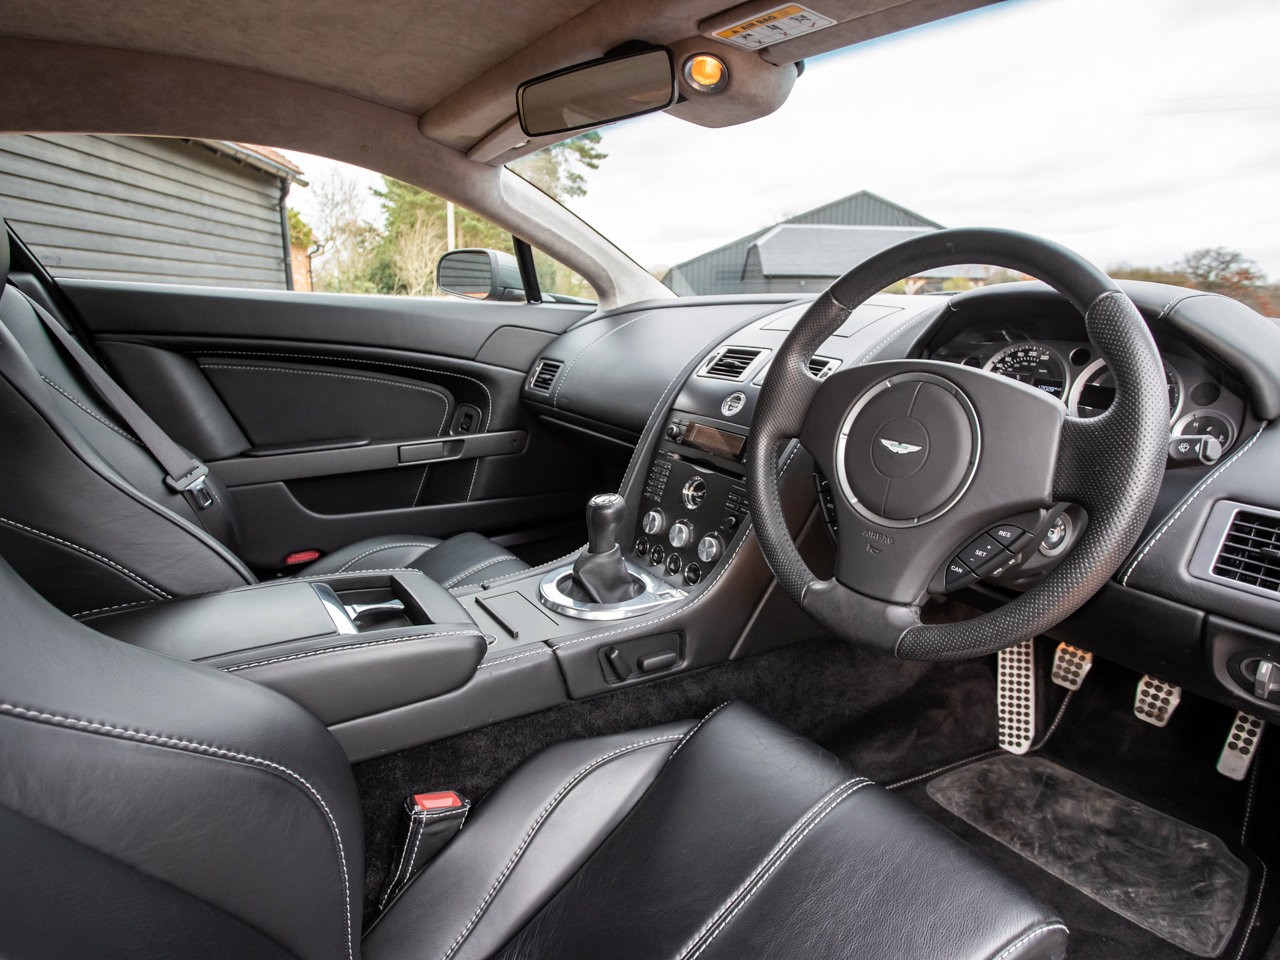 2008 Aston Martin V8 Vantage - Manual For Sale (picture 4 of 12)